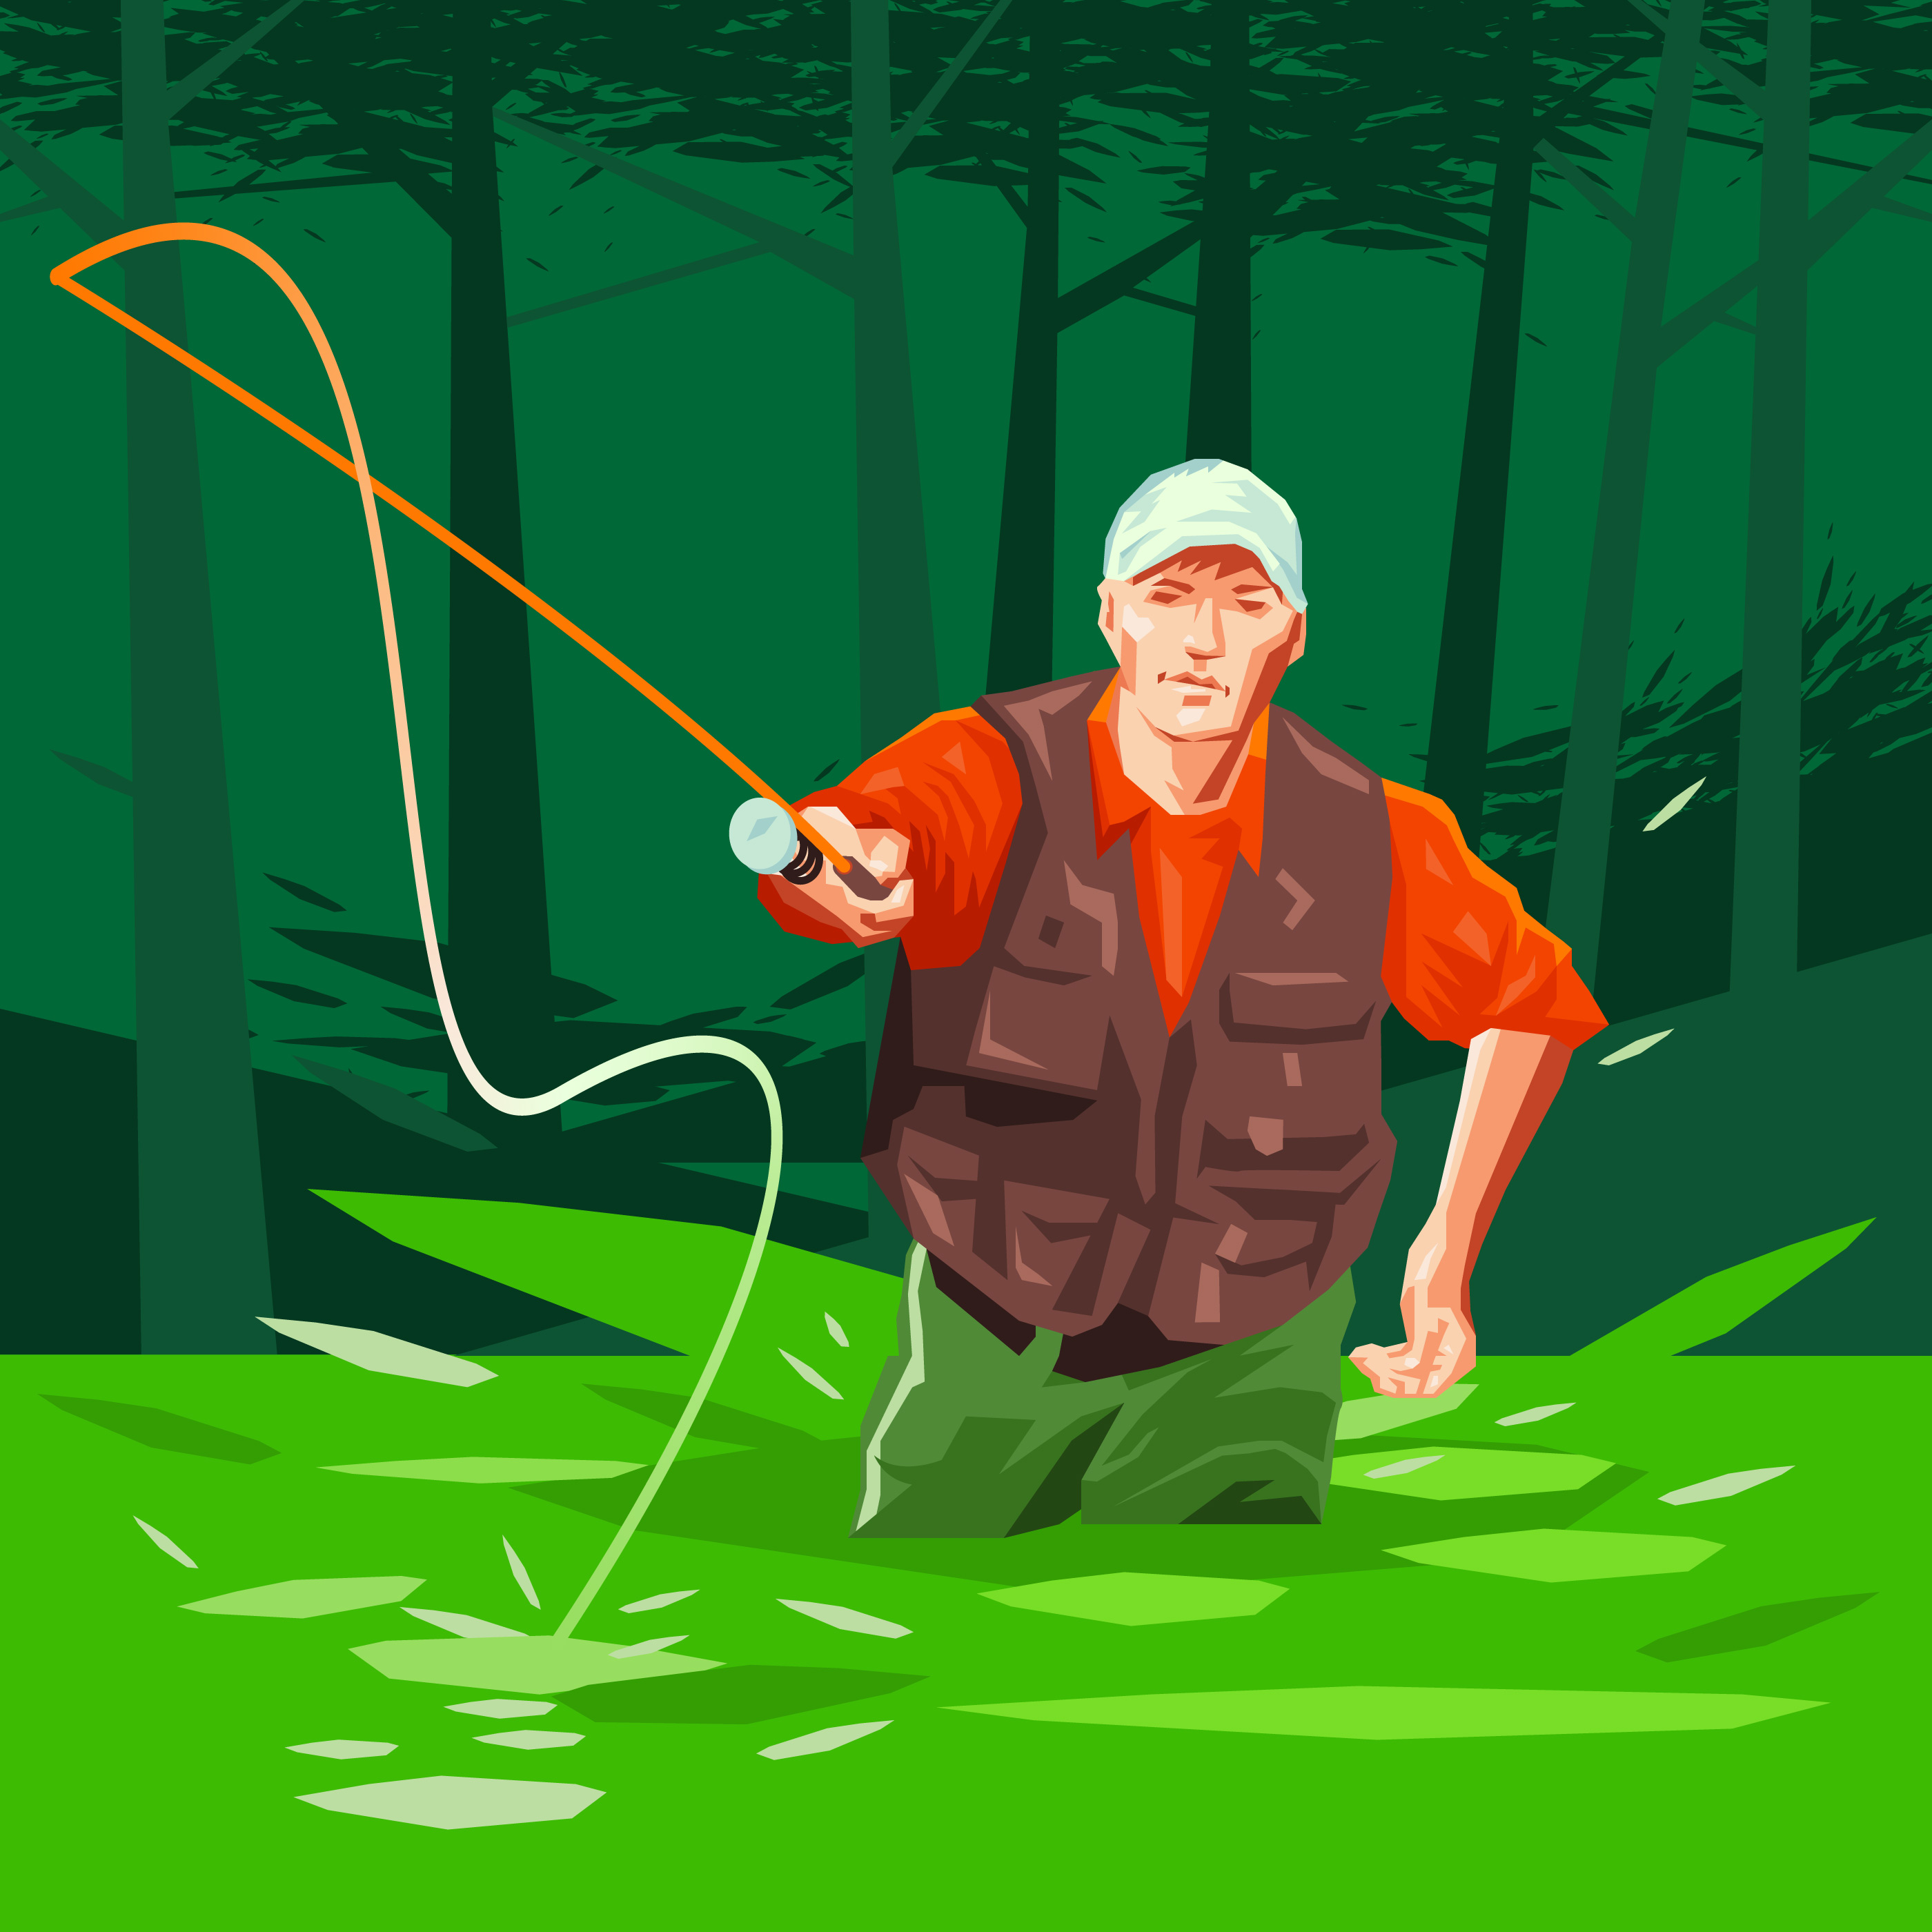 Fly Fisherman Fishing Abstract Illustration Download Free Vectors Clipart Graphics Amp Vector Art